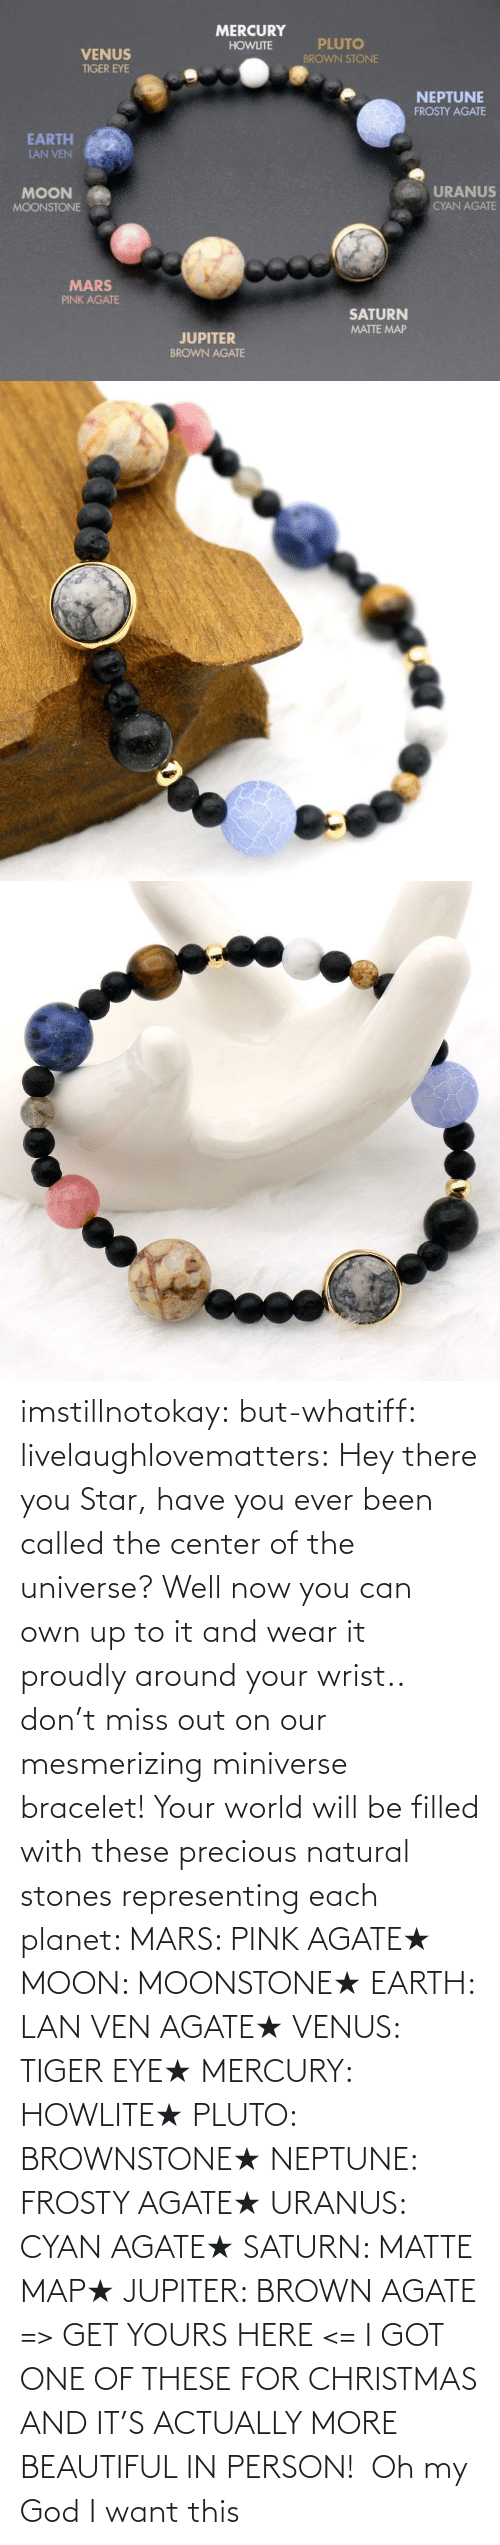 Pink: imstillnotokay: but-whatiff:  livelaughlovematters:  Hey there you Star, have you ever been called the center of the universe? Well now you can own up to it and wear it proudly around your wrist.. don't miss out on our mesmerizing miniverse bracelet! Your world will be filled with these precious natural stones representing each planet:  MARS: PINK AGATE★ MOON: MOONSTONE★ EARTH: LAN VEN AGATE★ VENUS: TIGER EYE★ MERCURY: HOWLITE★ PLUTO: BROWNSTONE★ NEPTUNE: FROSTY AGATE★ URANUS: CYAN AGATE★ SATURN: MATTE MAP★ JUPITER: BROWN AGATE => GET YOURS HERE <=  I GOT ONE OF THESE FOR CHRISTMAS AND IT'S ACTUALLY MORE BEAUTIFUL IN PERSON!     Oh my God I want this